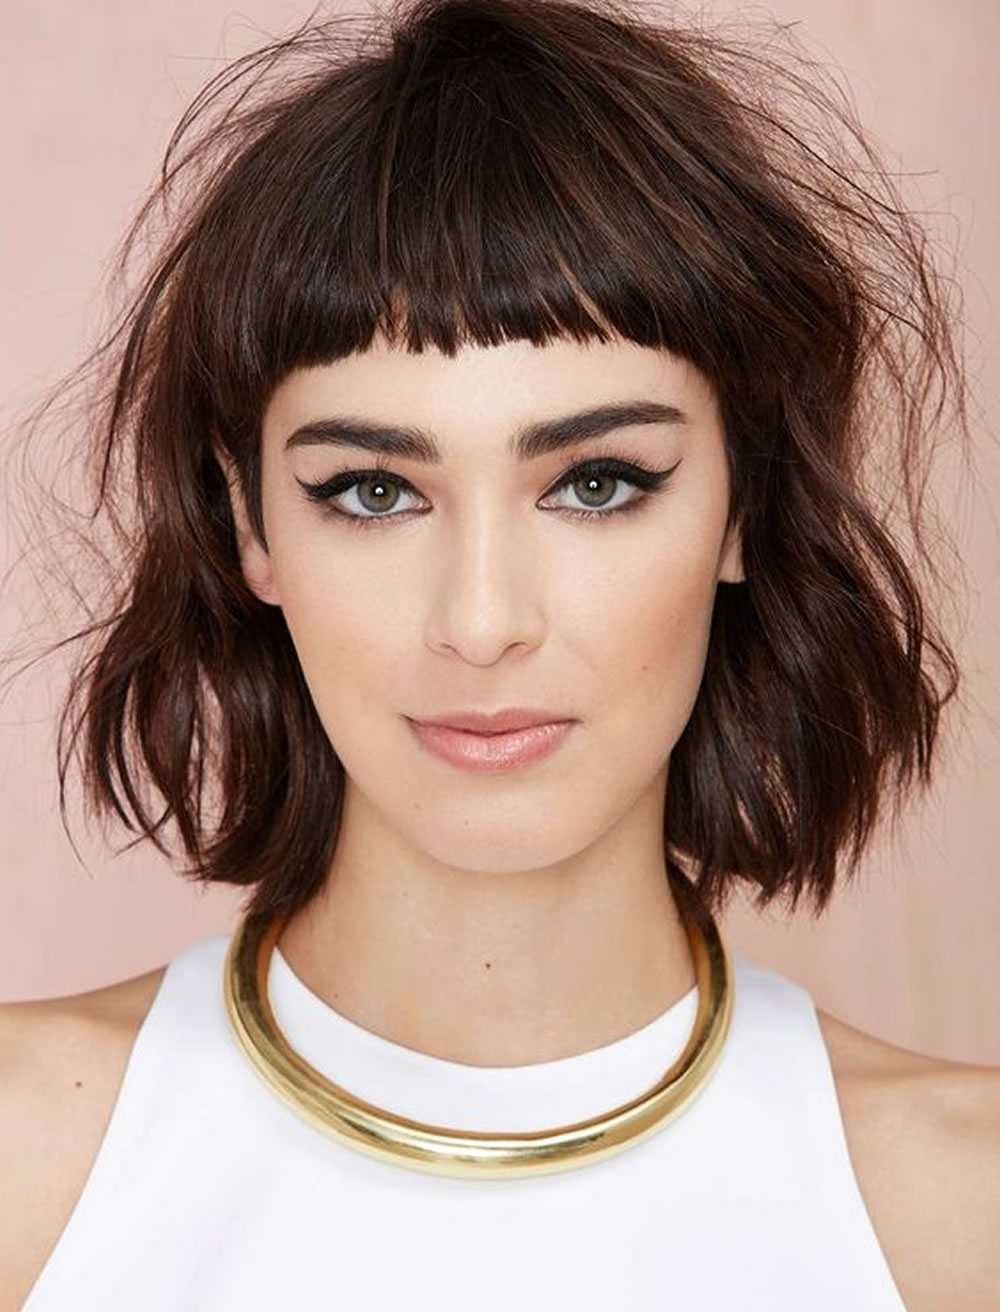 2018 Short Haircut Trends & Short Hairstyle Ideas For Women – Page 2 for Haircut Trends 2018 Short Hair